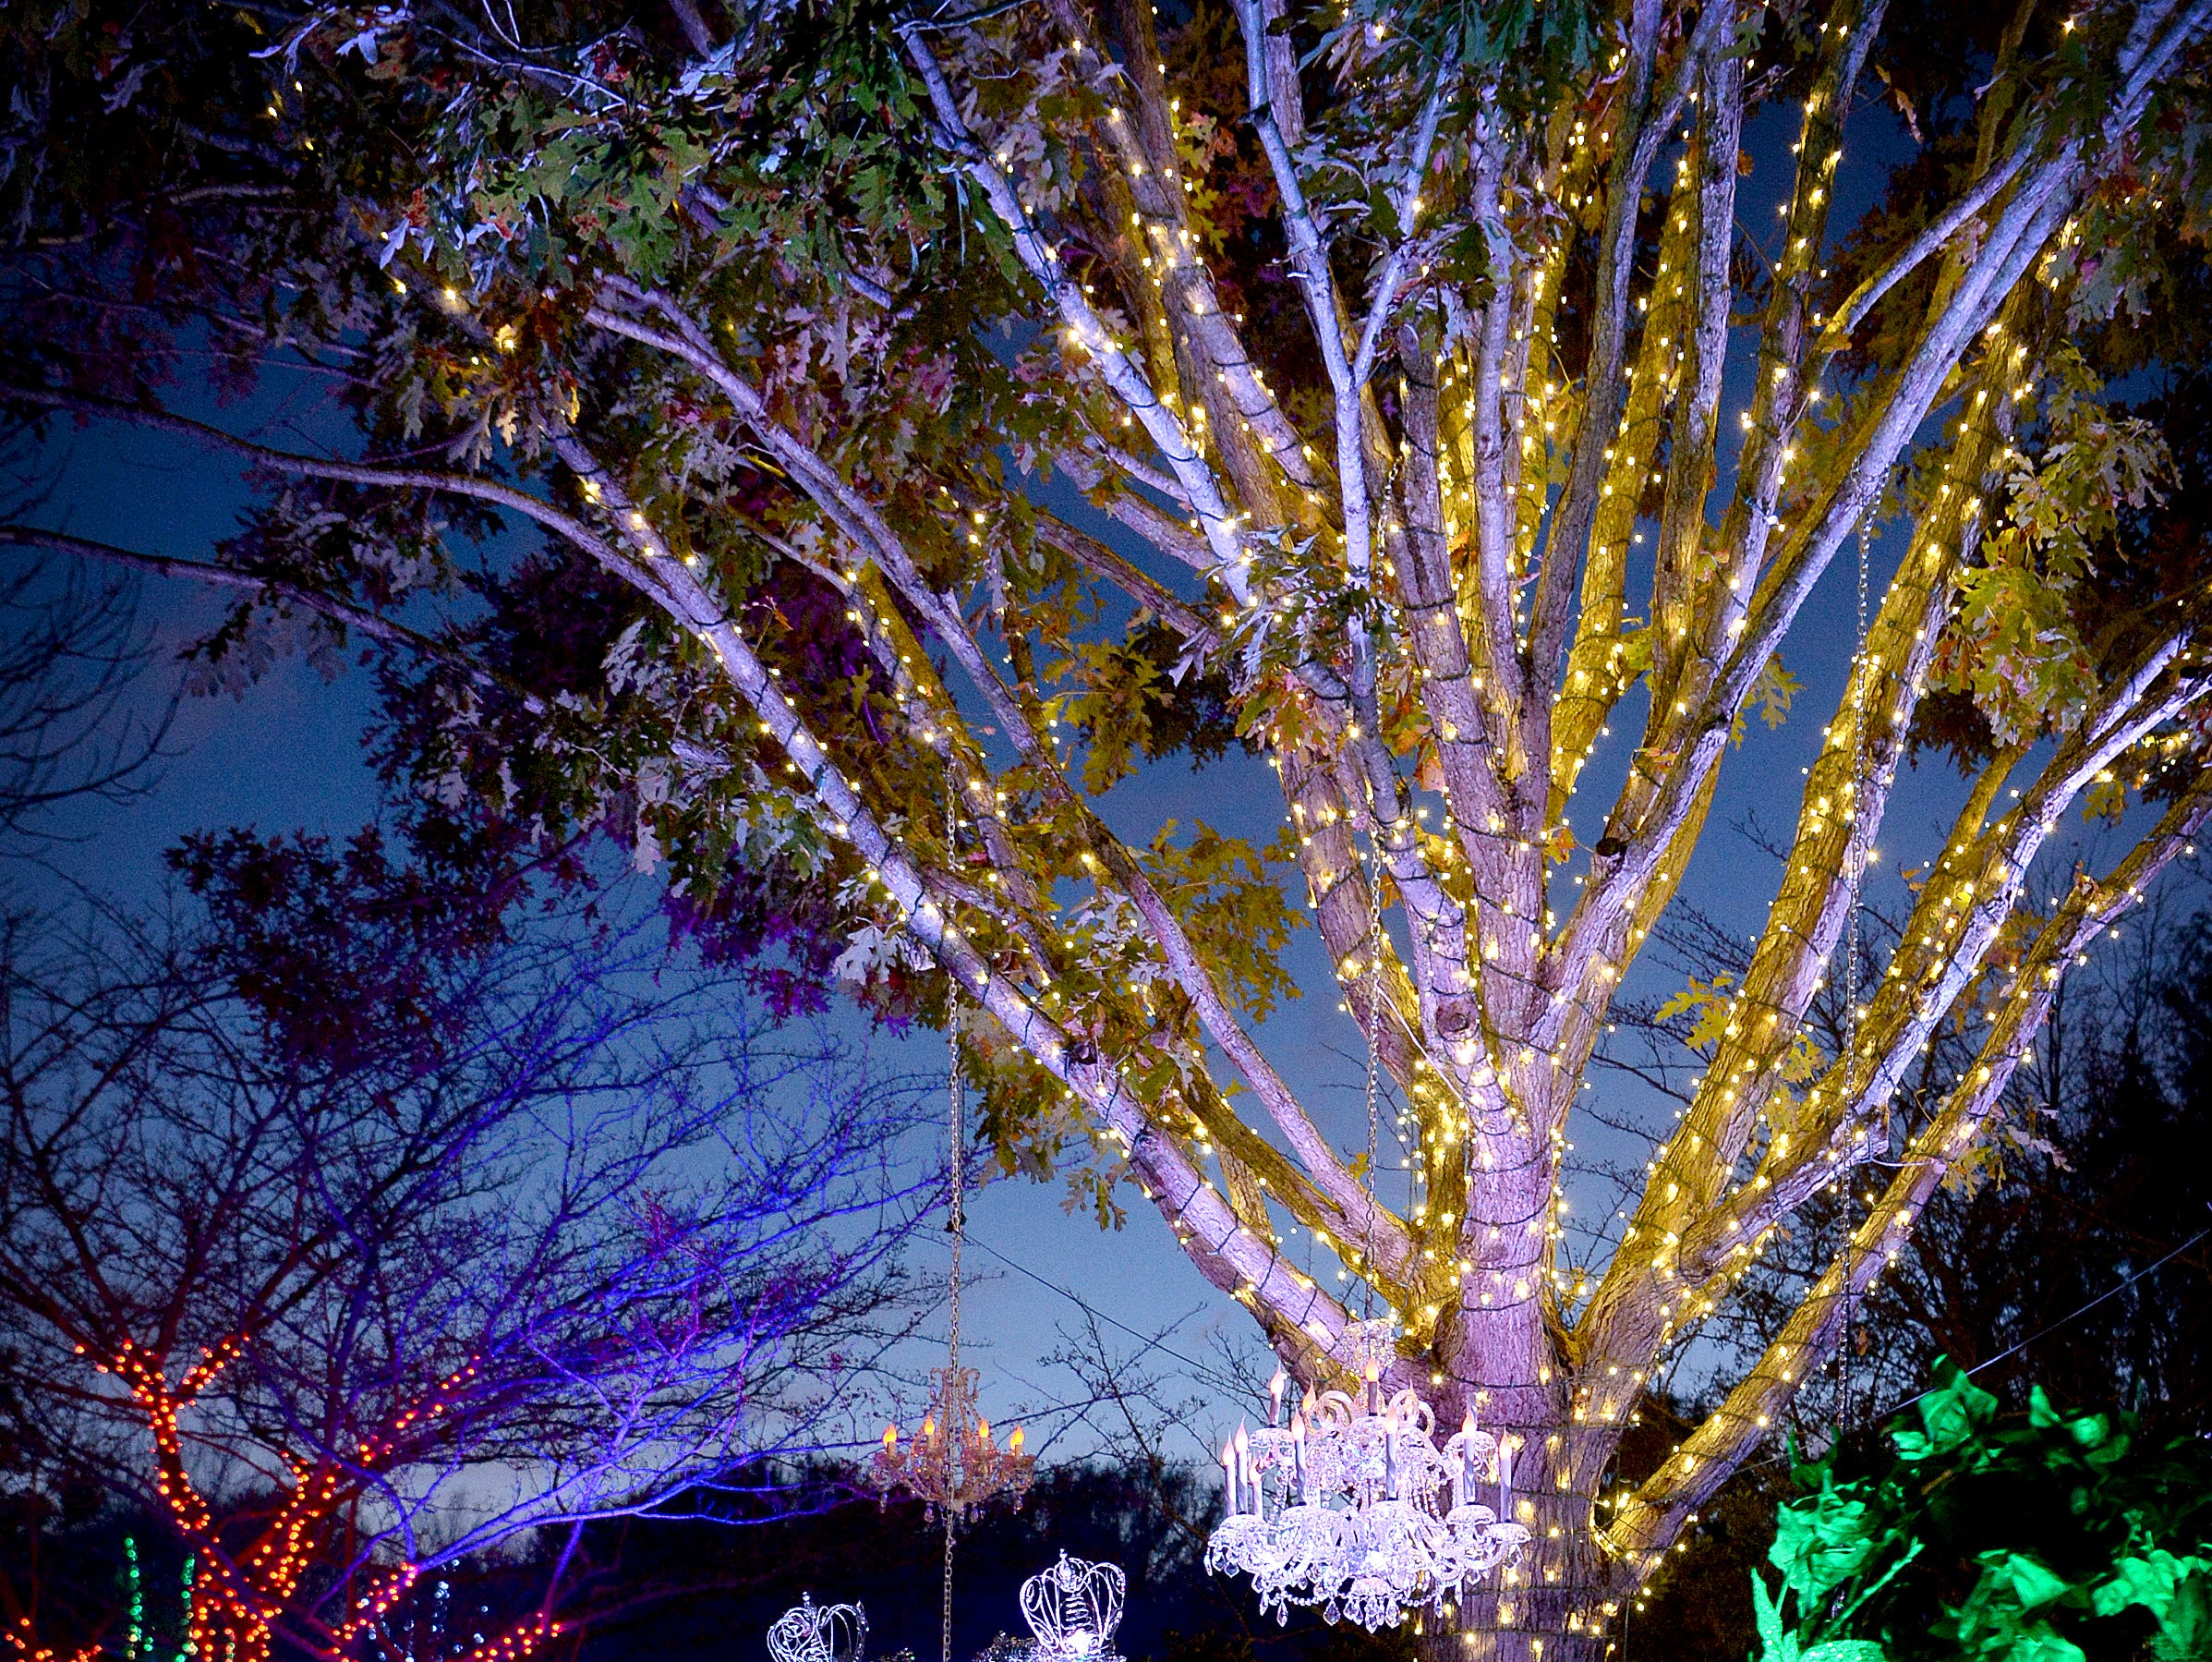 Ball gowns are made from evergreens and lights below hanging chandeliers in the Heritage Garden during the Winter Lights show at the North Carolina Arboretum on Nov. 16, 2018. The show runs nightly through the end of the year.